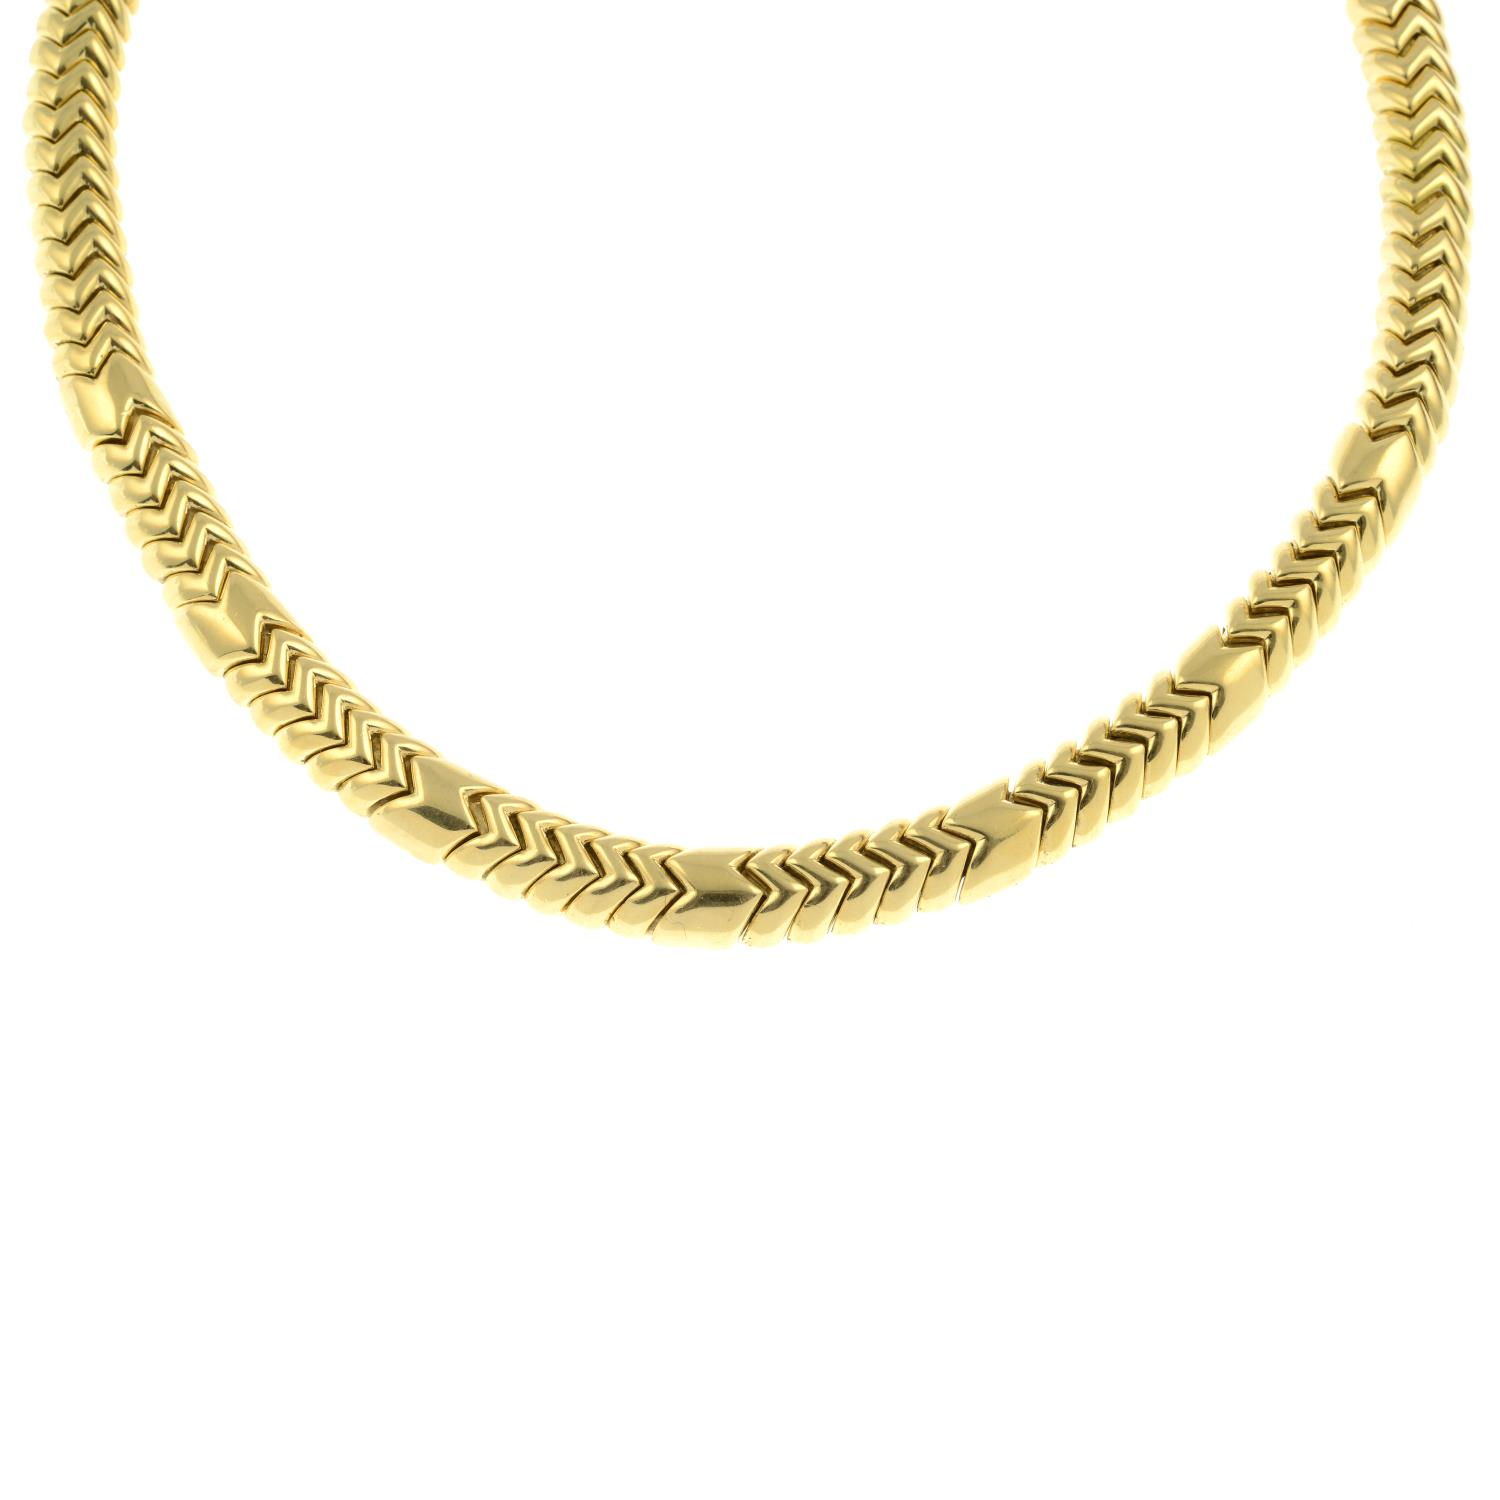 An 18ct gold 'Spiga' necklace, by Bulgari. - Image 2 of 6